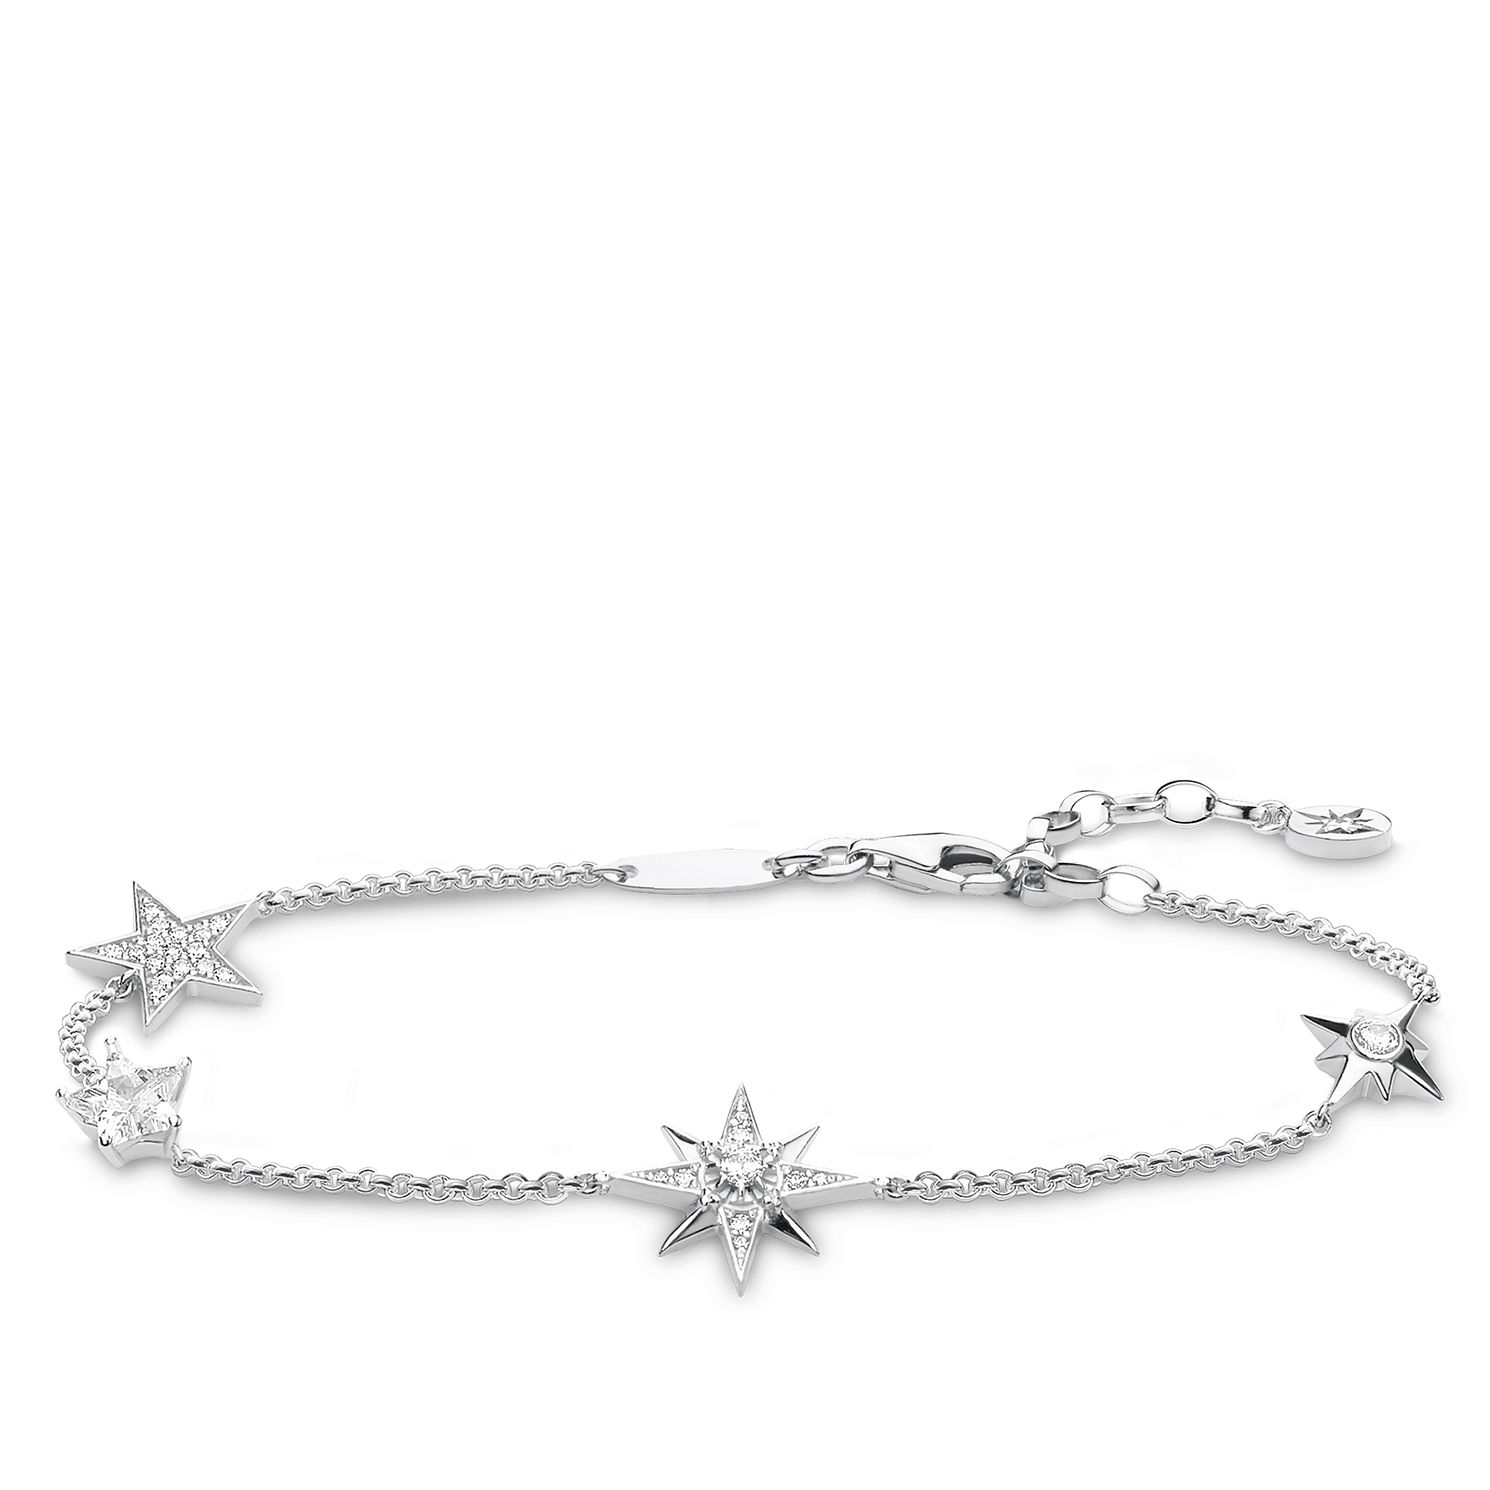 Thomas Sabo Silver Zirconia Star Bracelet - Product number 4004701